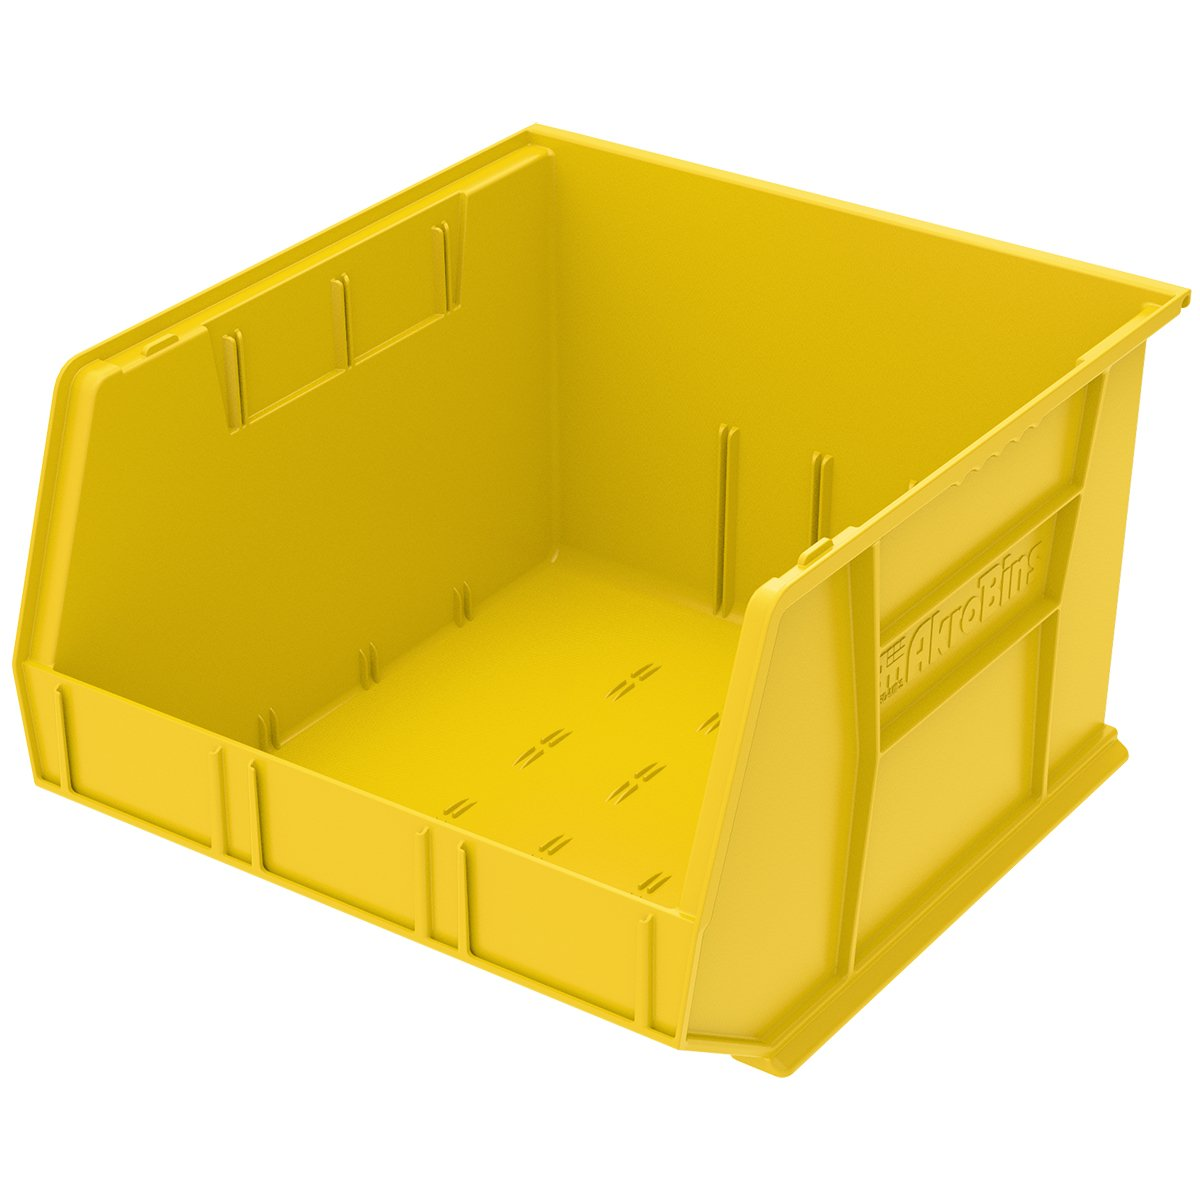 Akro-Mils 30270 AkroBins Plastic Storage Hanging Stacking Containers, (18-Inch x 16-Inch x 11-Inch), Yellow, (3-Pack) (30270YELLO)